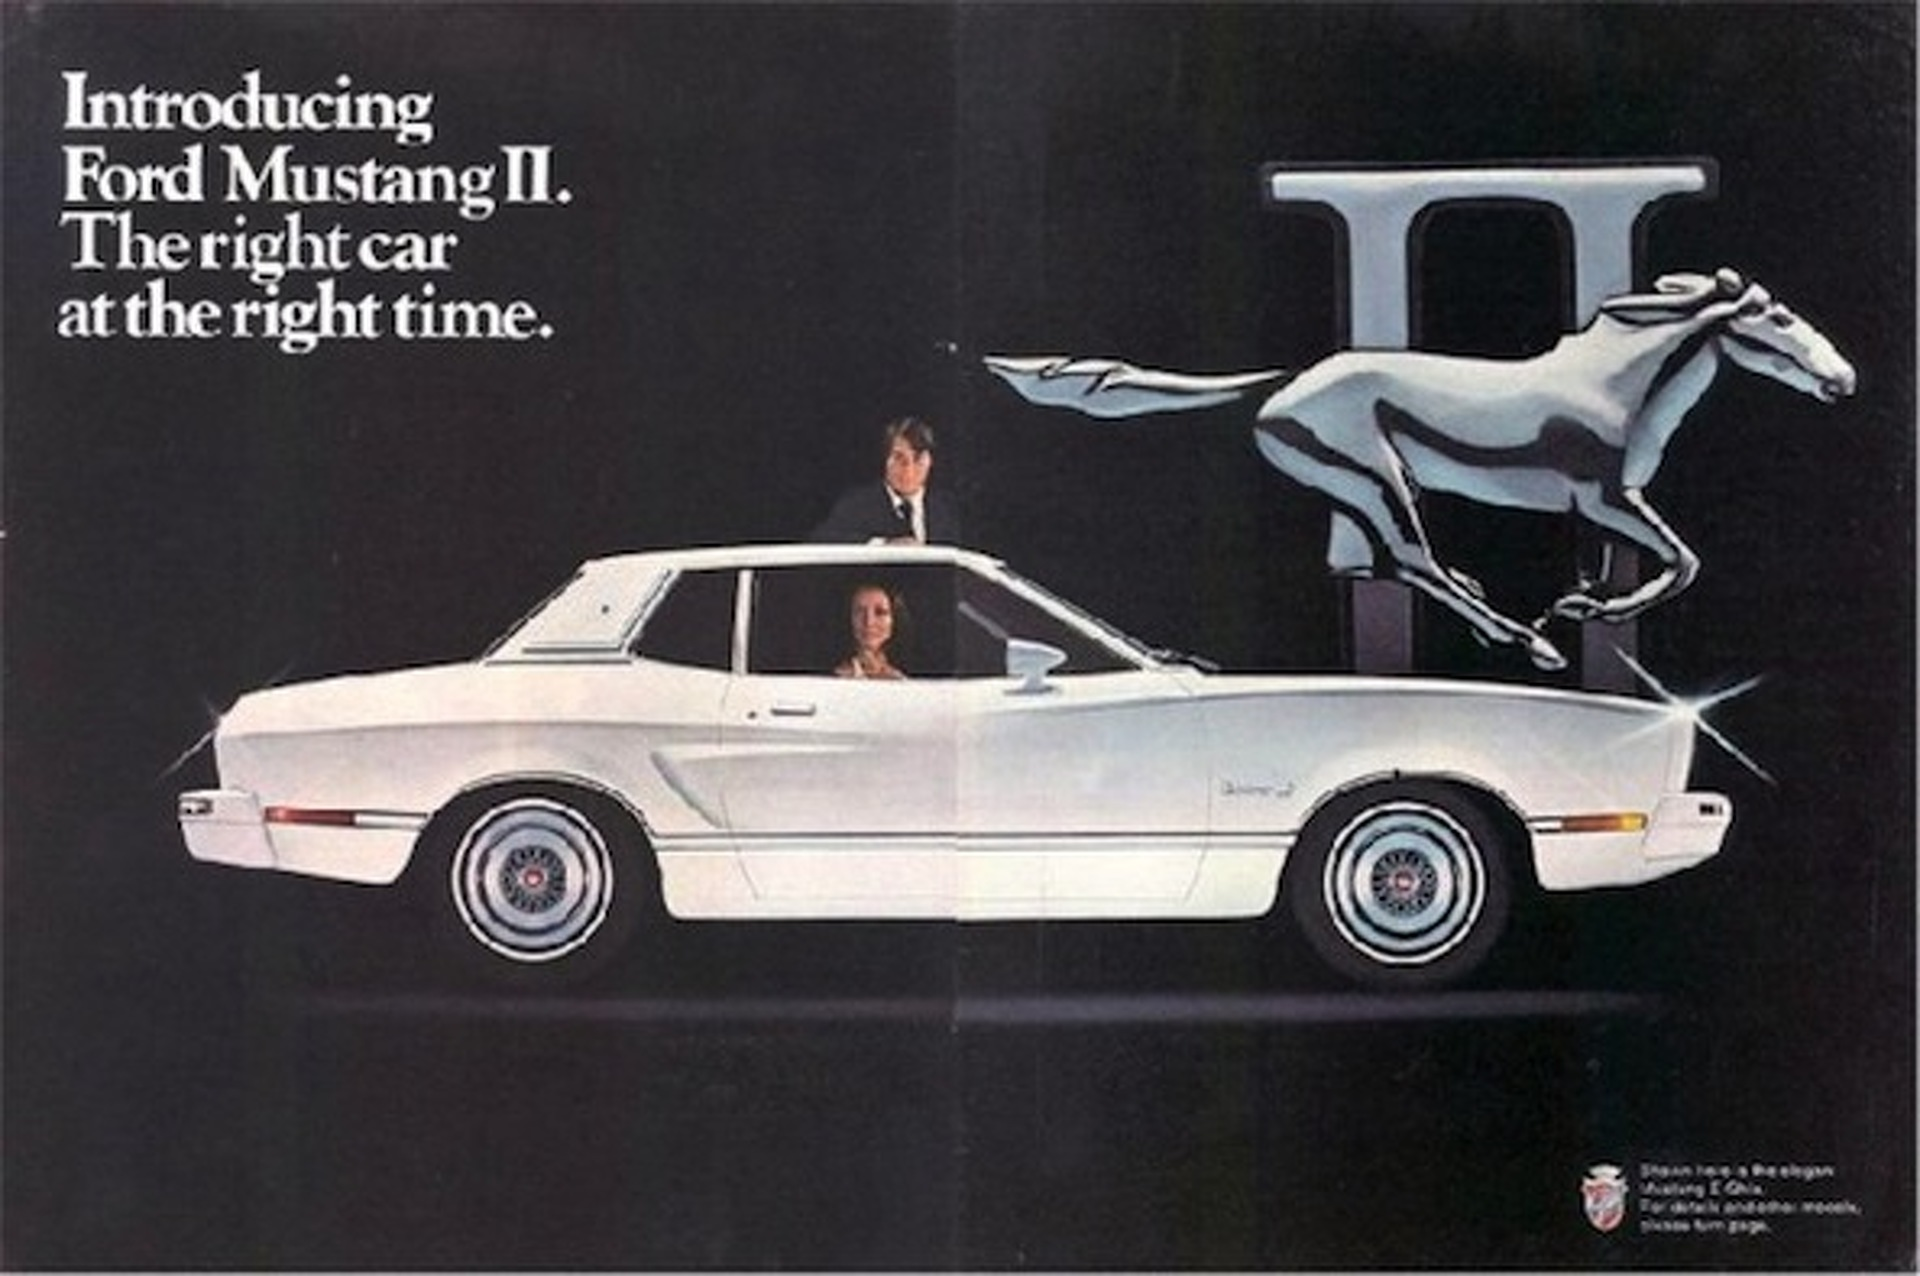 1974-ford-mustang-ii-why.jpg